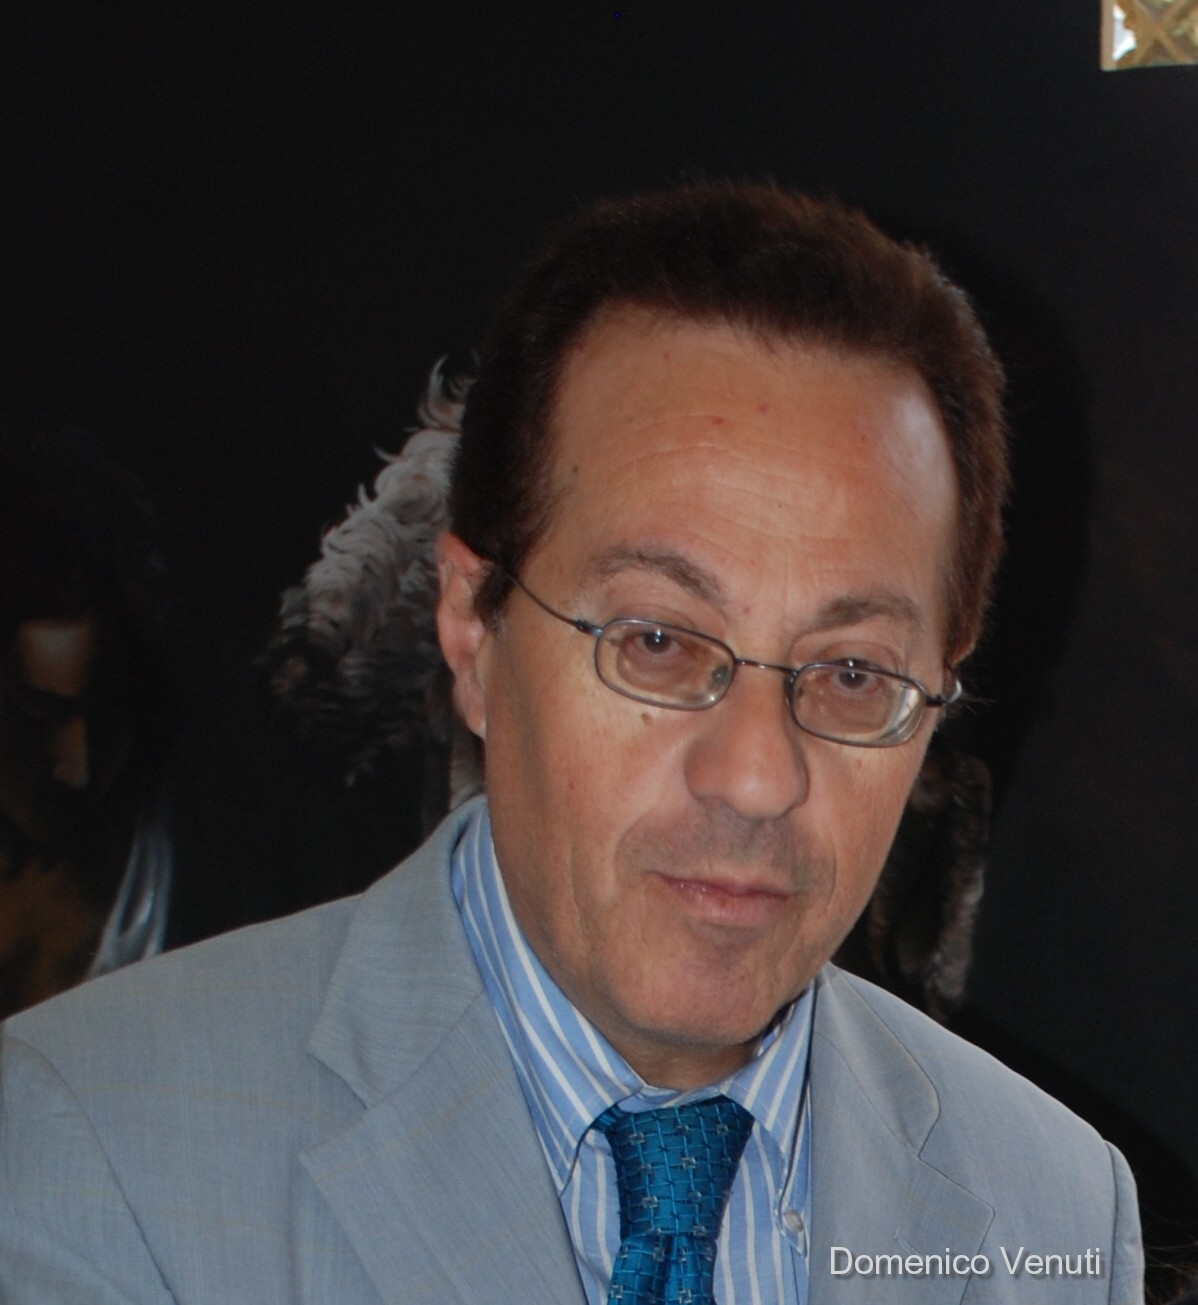 Domenico Venuti n